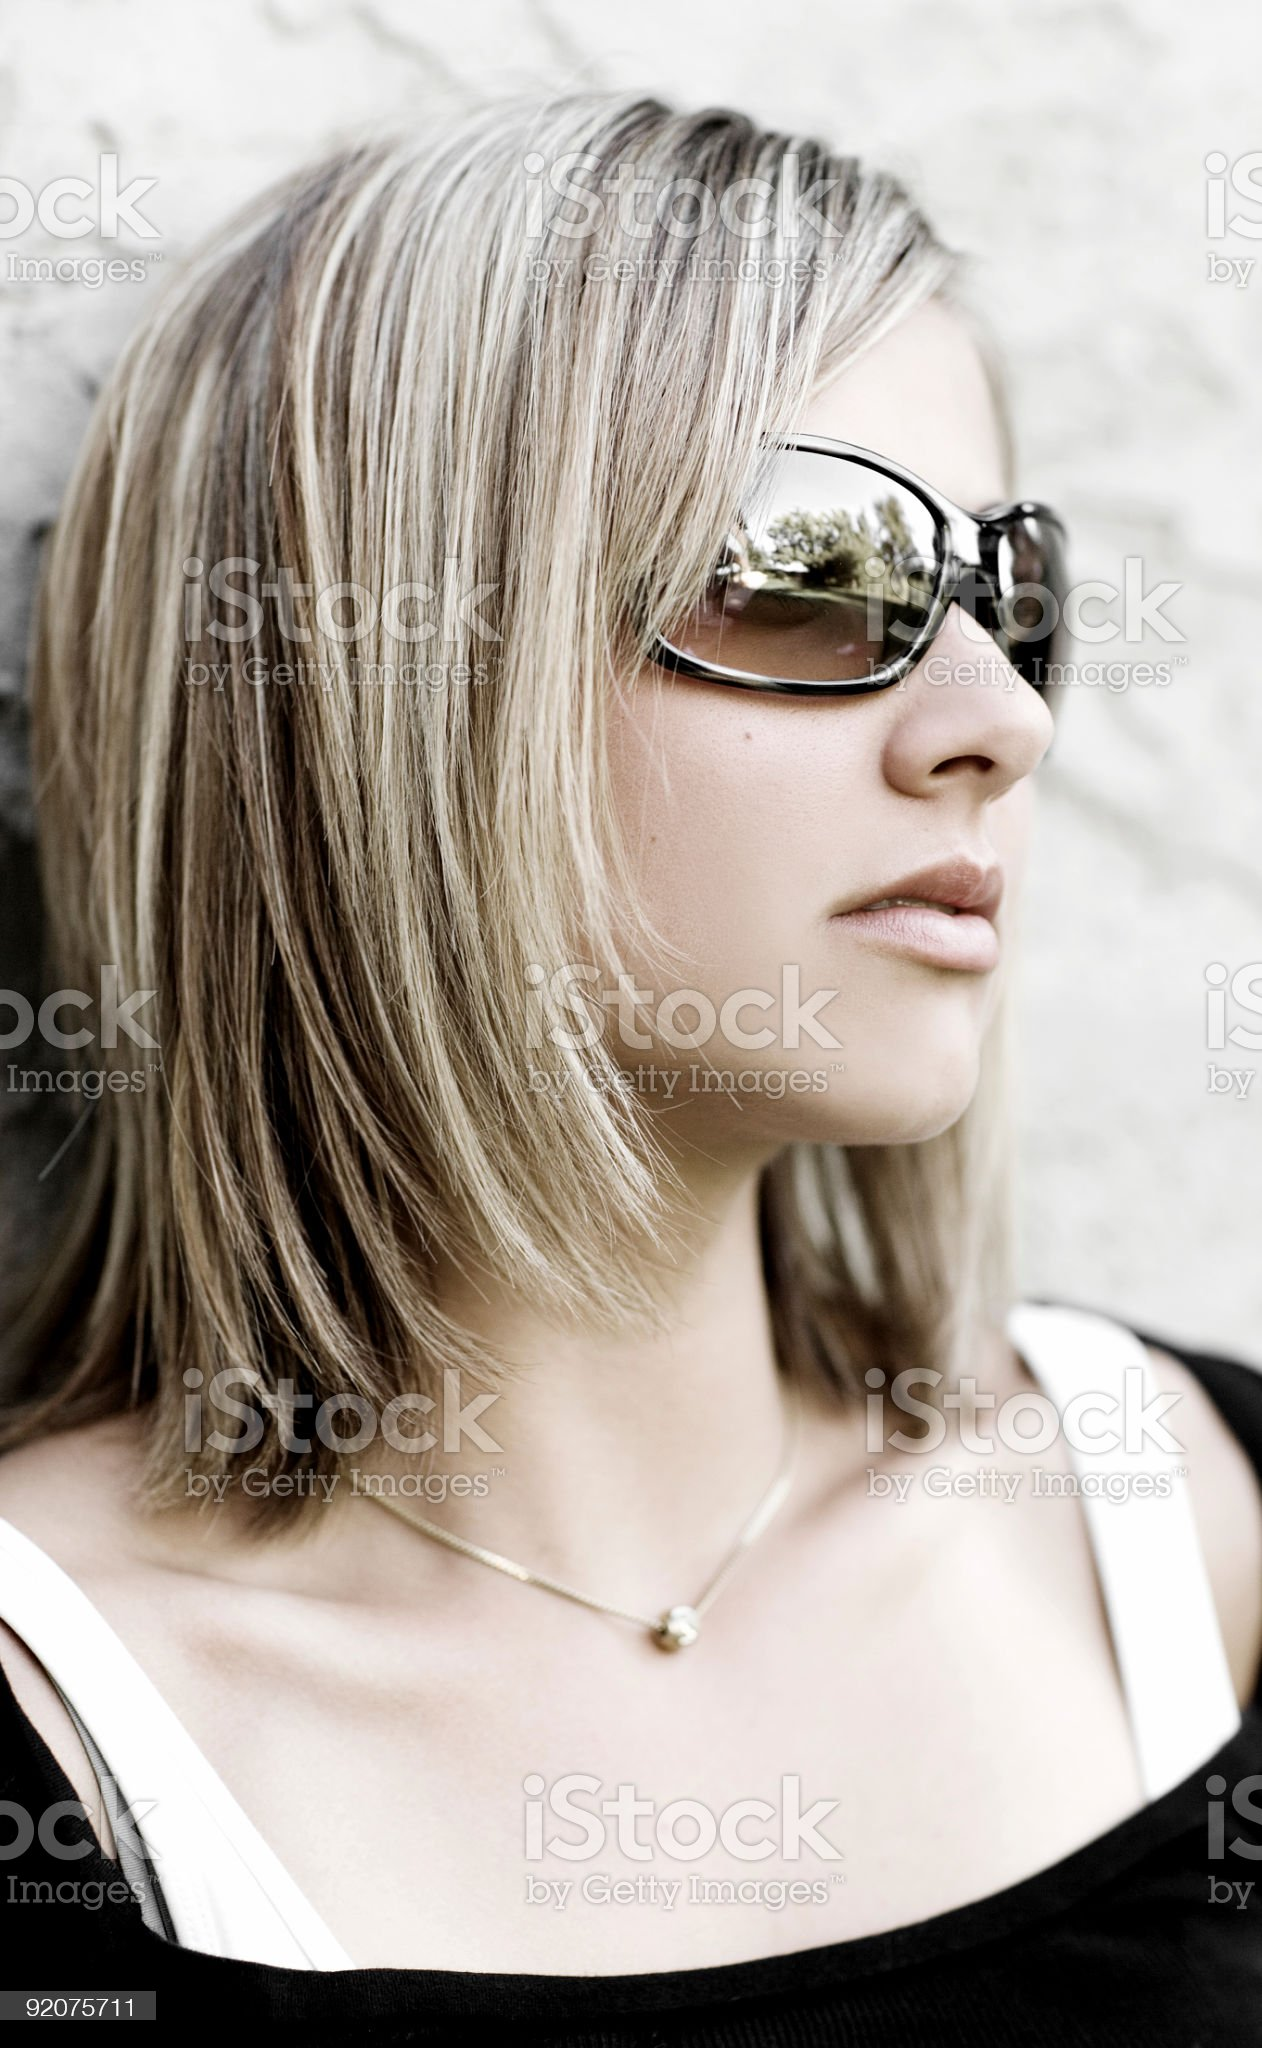 Sunglass Portrait royalty-free stock photo